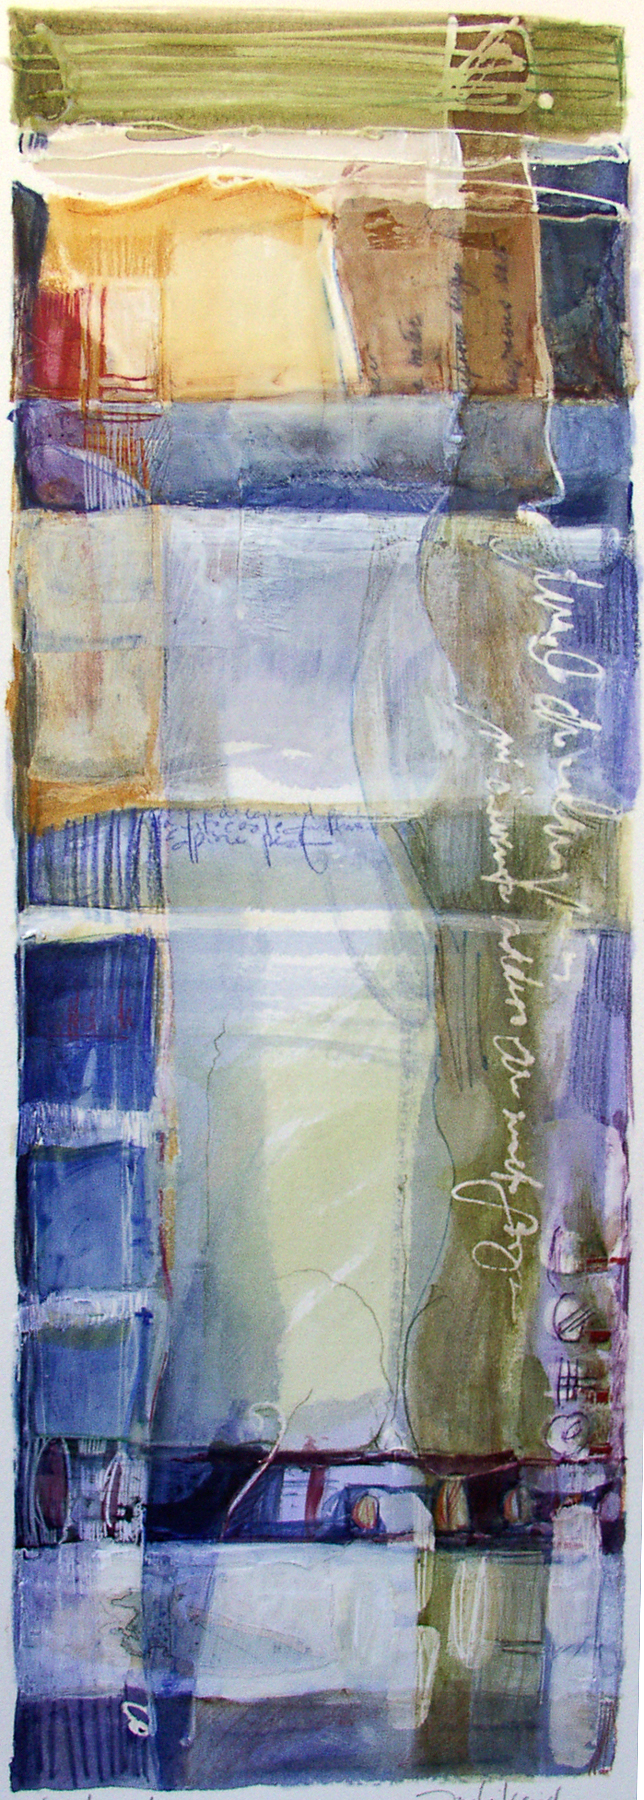 Fondamento, 7 x 20 inches, sold